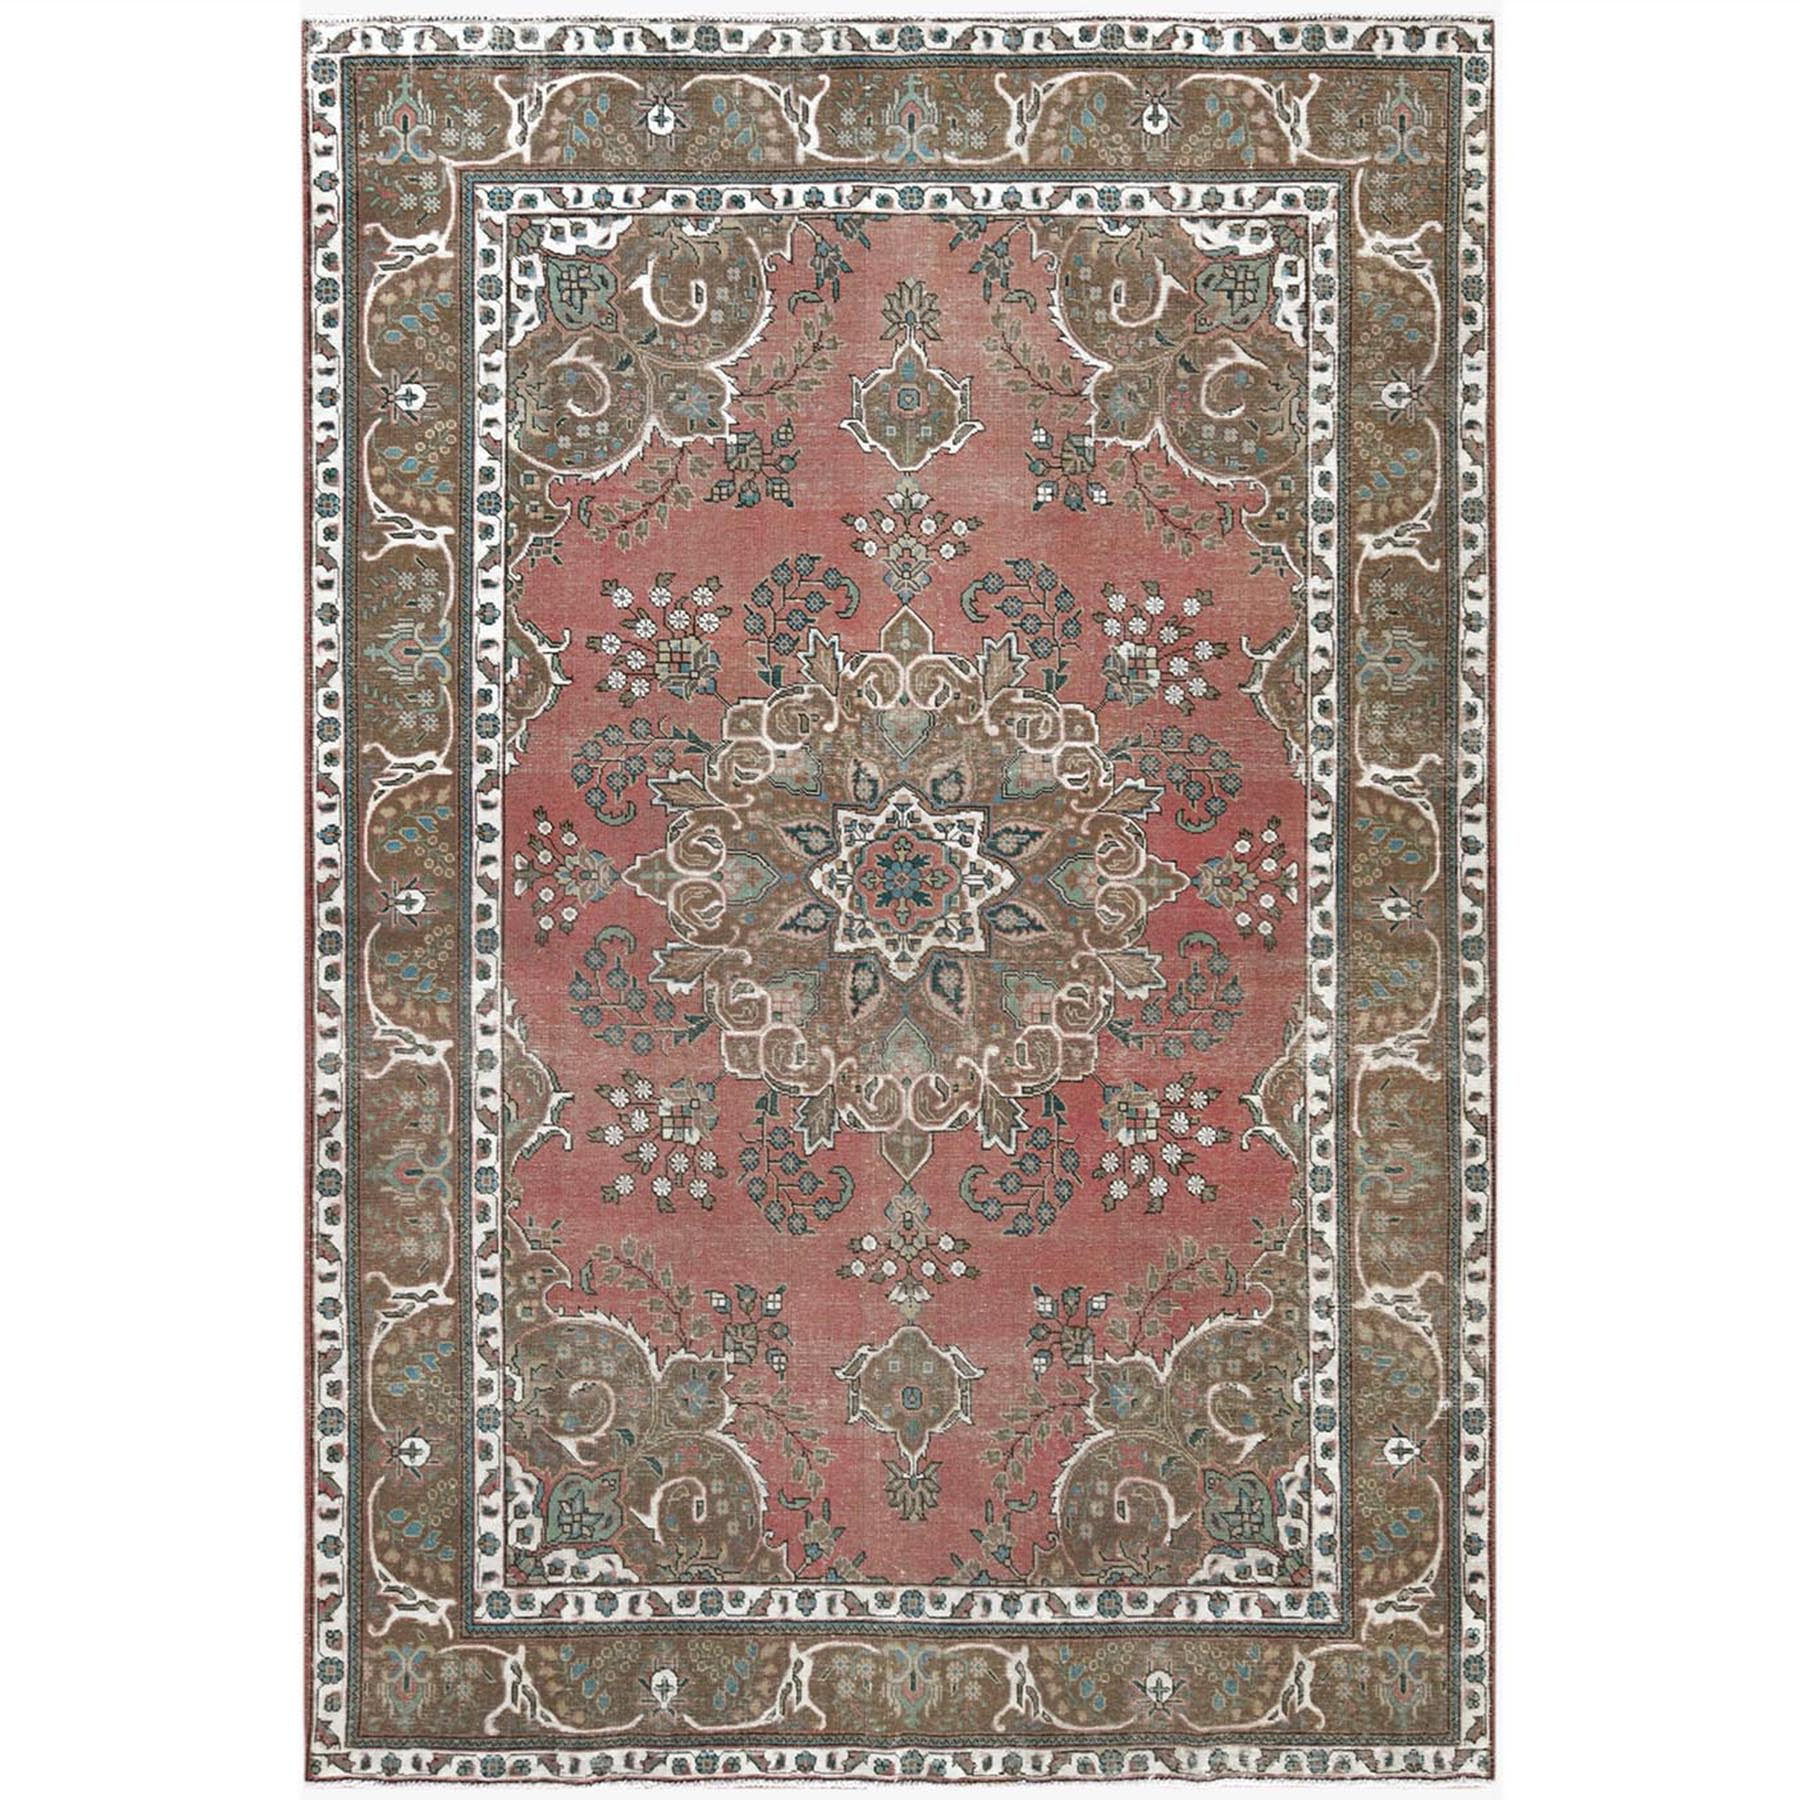 Fetneh Collection And Vintage Overdyed Collection Hand Knotted Pink Rug No: 1122788